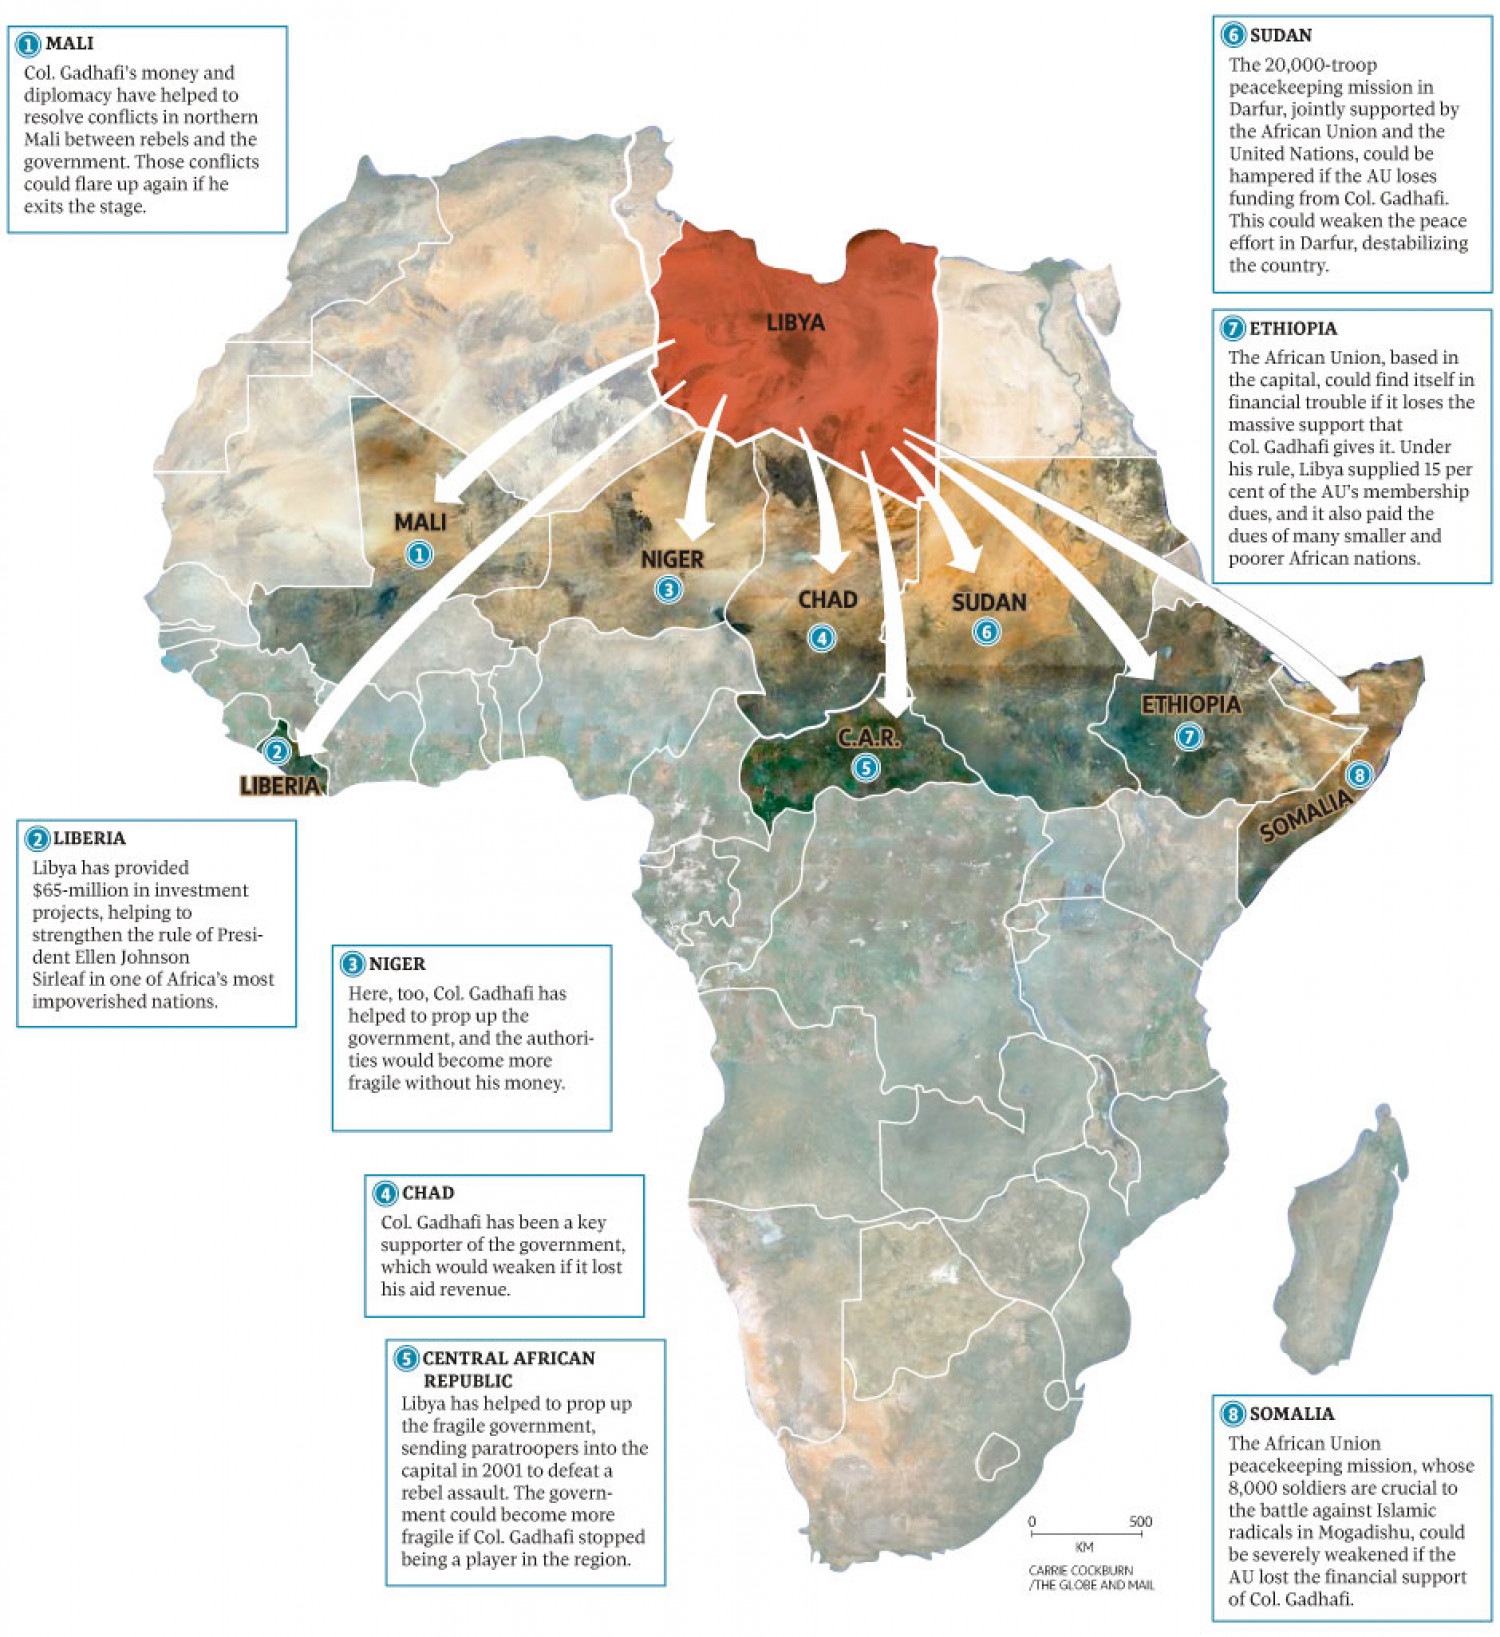 Gadhafi's Influence on Africa Infographic